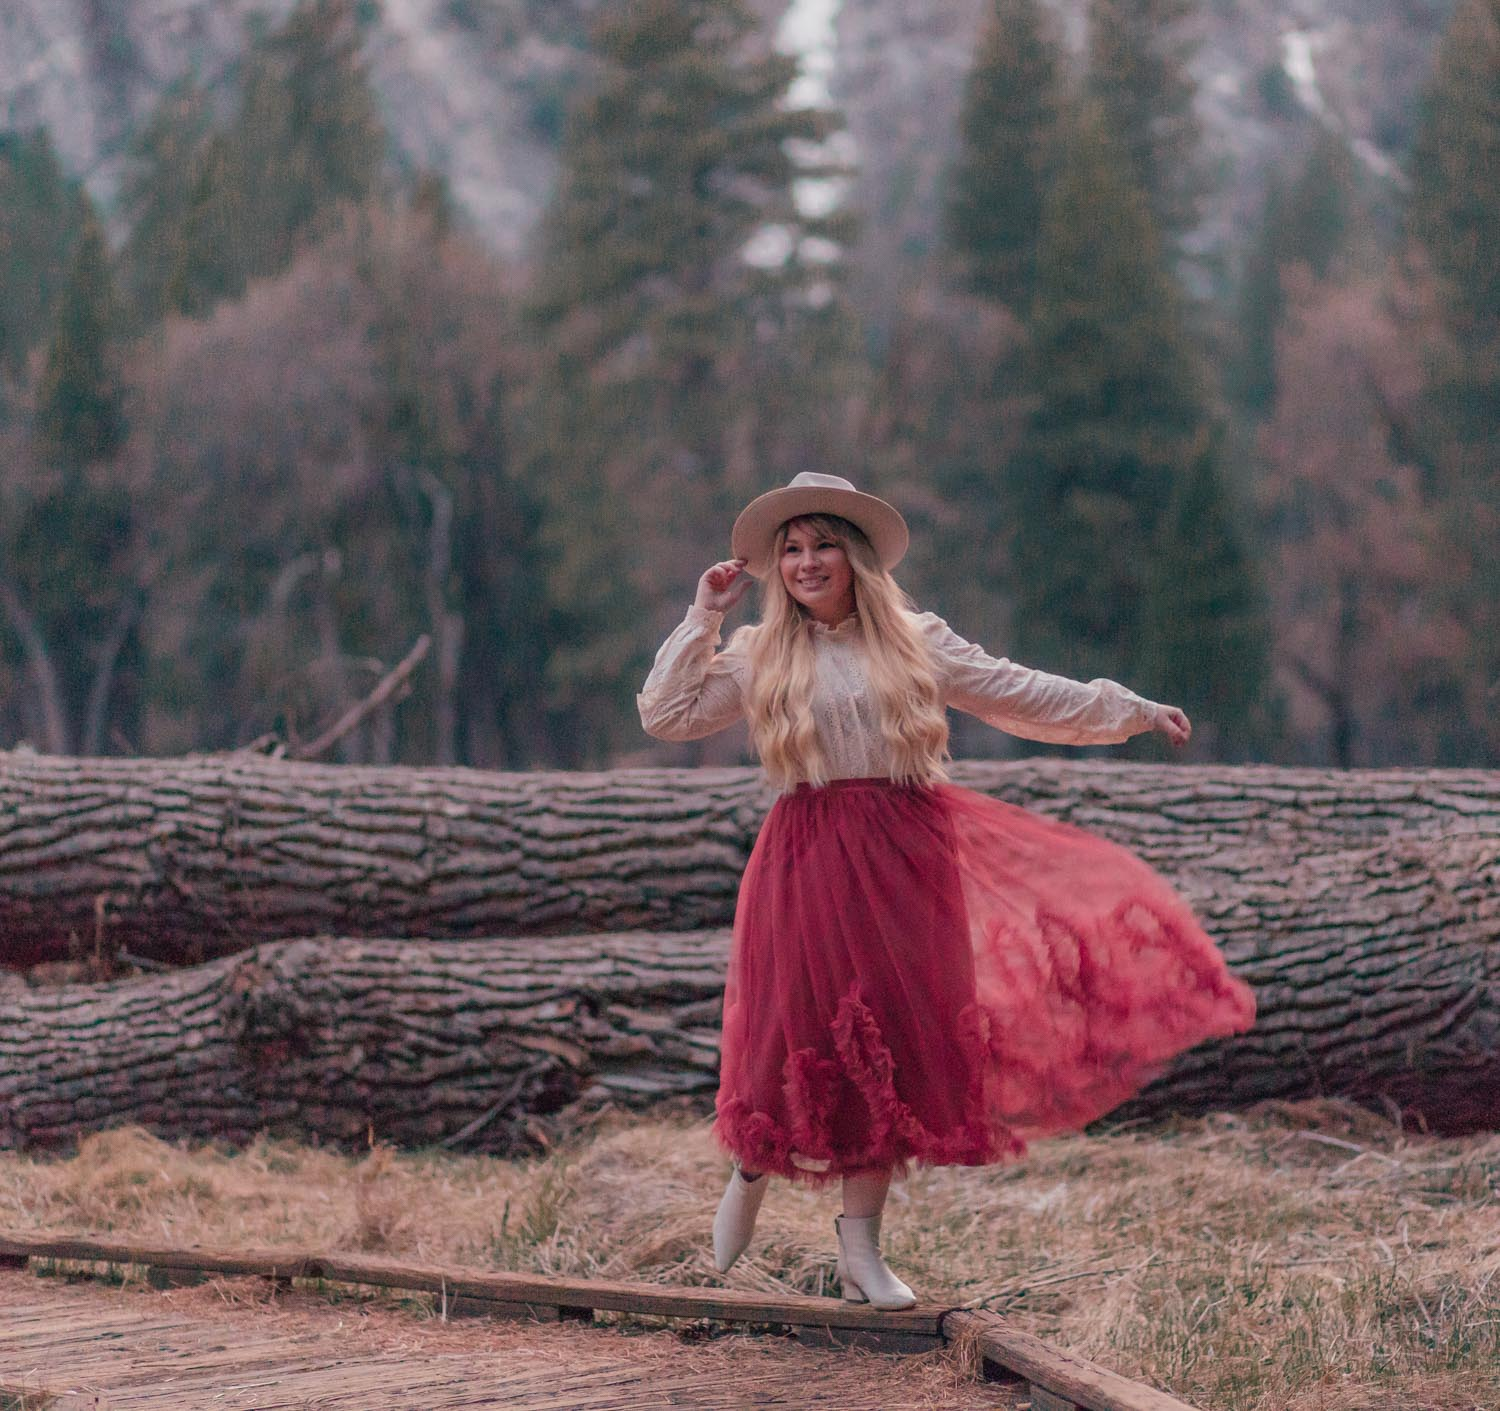 Feminine fashion blogger Elizabeth Hugen of Lizzie in Lace shares her April 2021 Month in Review and a feminine spring outfit with a rose tulle skirt and Gigi Pip Monroe rancher hat in Yosemite National Park